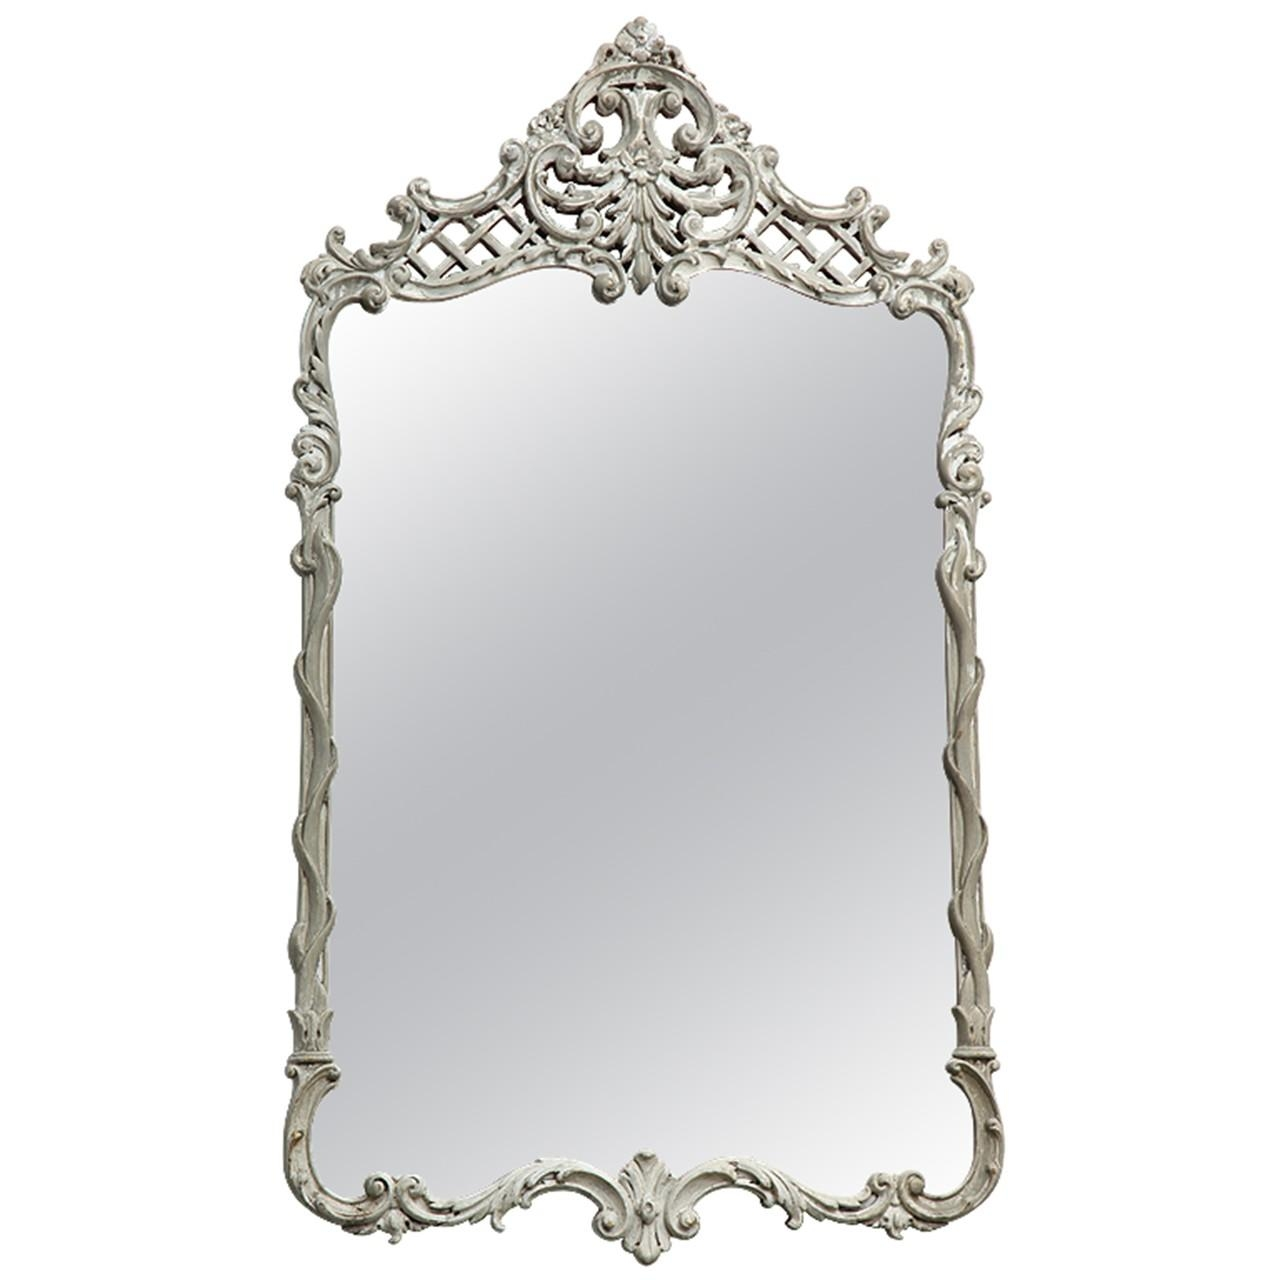 French Rococo Mirror – Prudence Designs & Events | Prudence In Roccoco Mirror (Image 12 of 20)